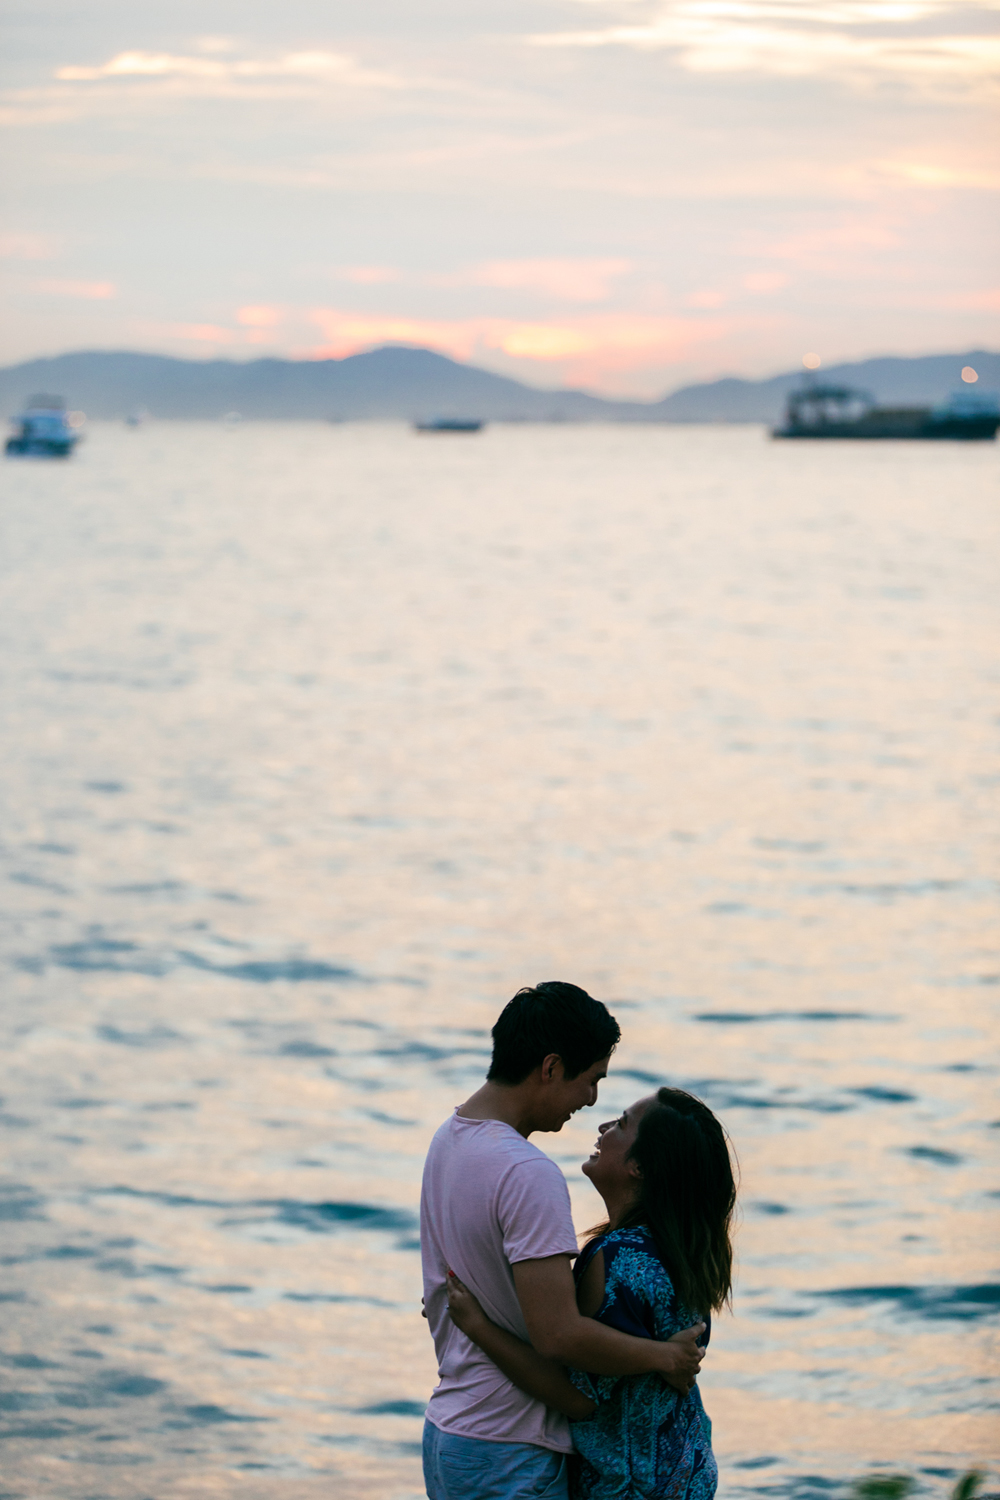 Sunset silhouette | Hong Kong sunset and couple | Tracy Wong